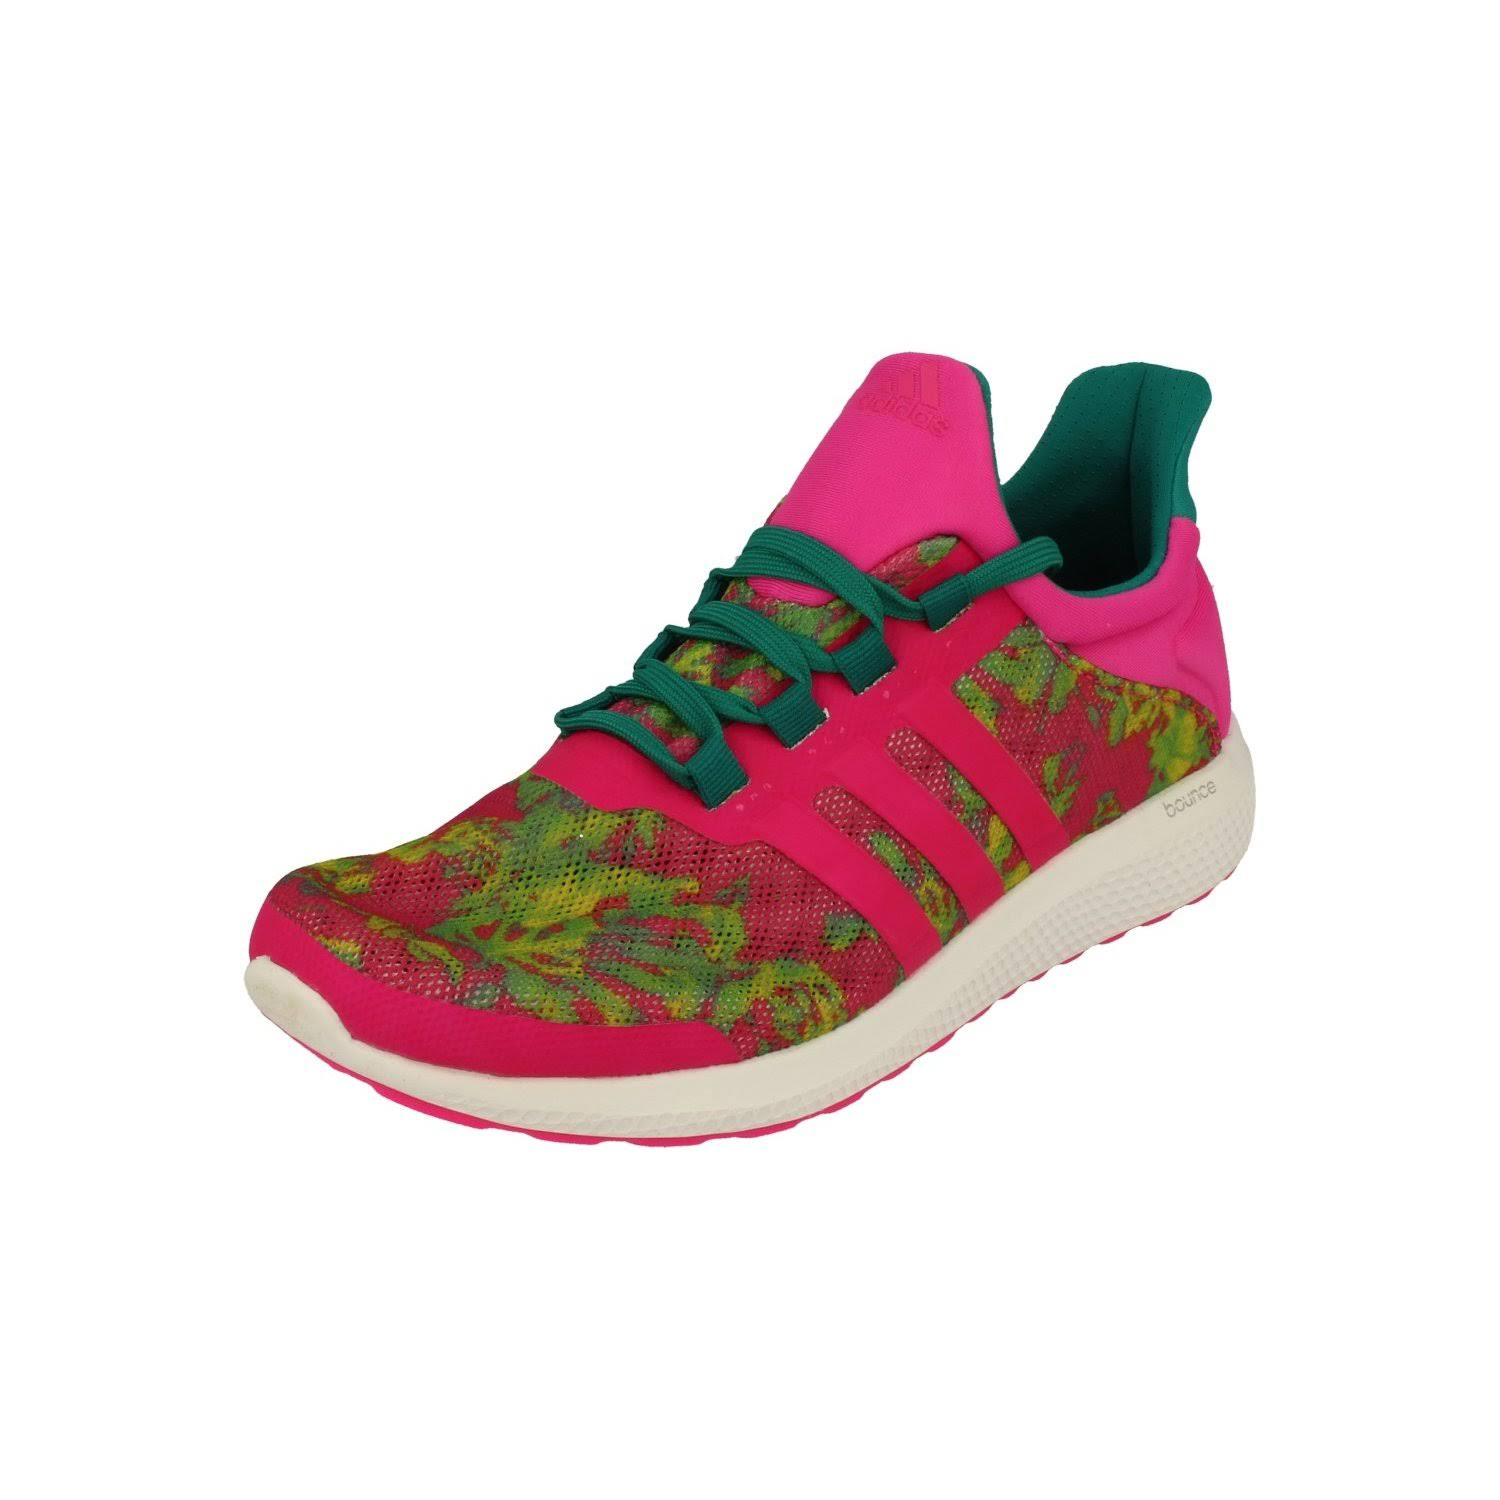 (4.5) Adidas Cc Sonic Womens Running Trainers Shoes